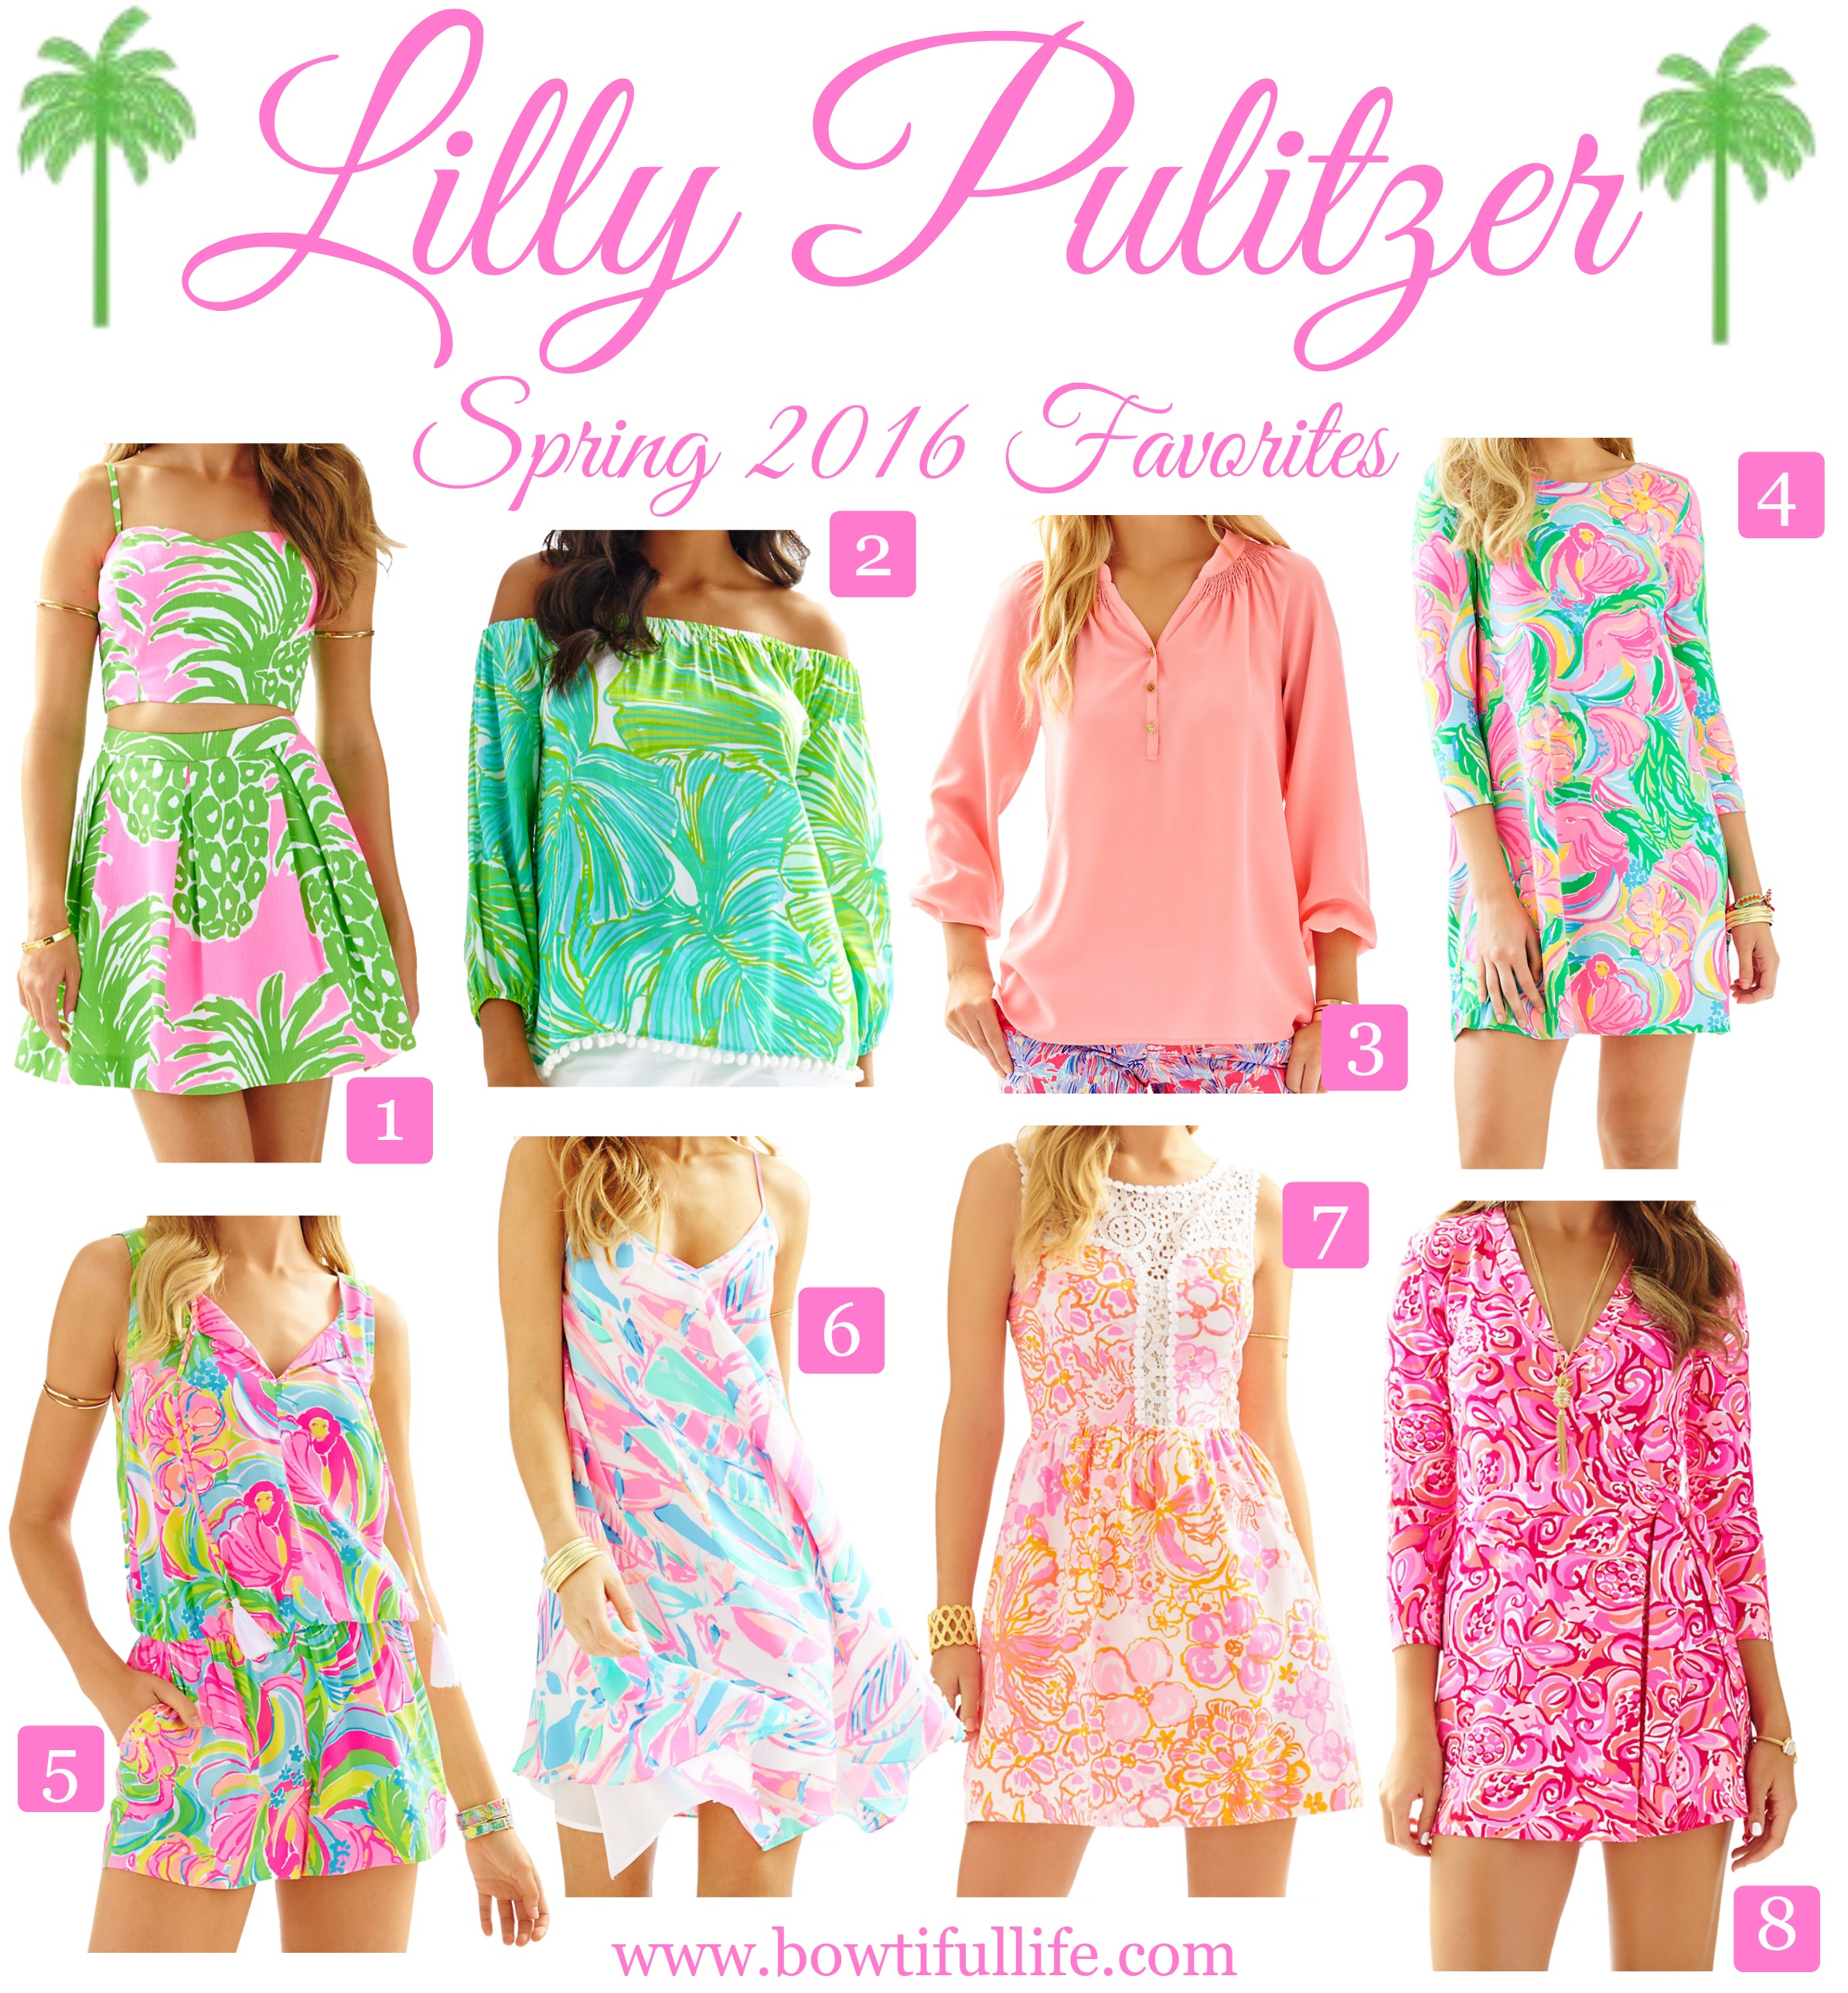 3859acf264b 8 Must-Haves from Lilly Pulitzer's Spring '16 Collection - Bowtiful Life